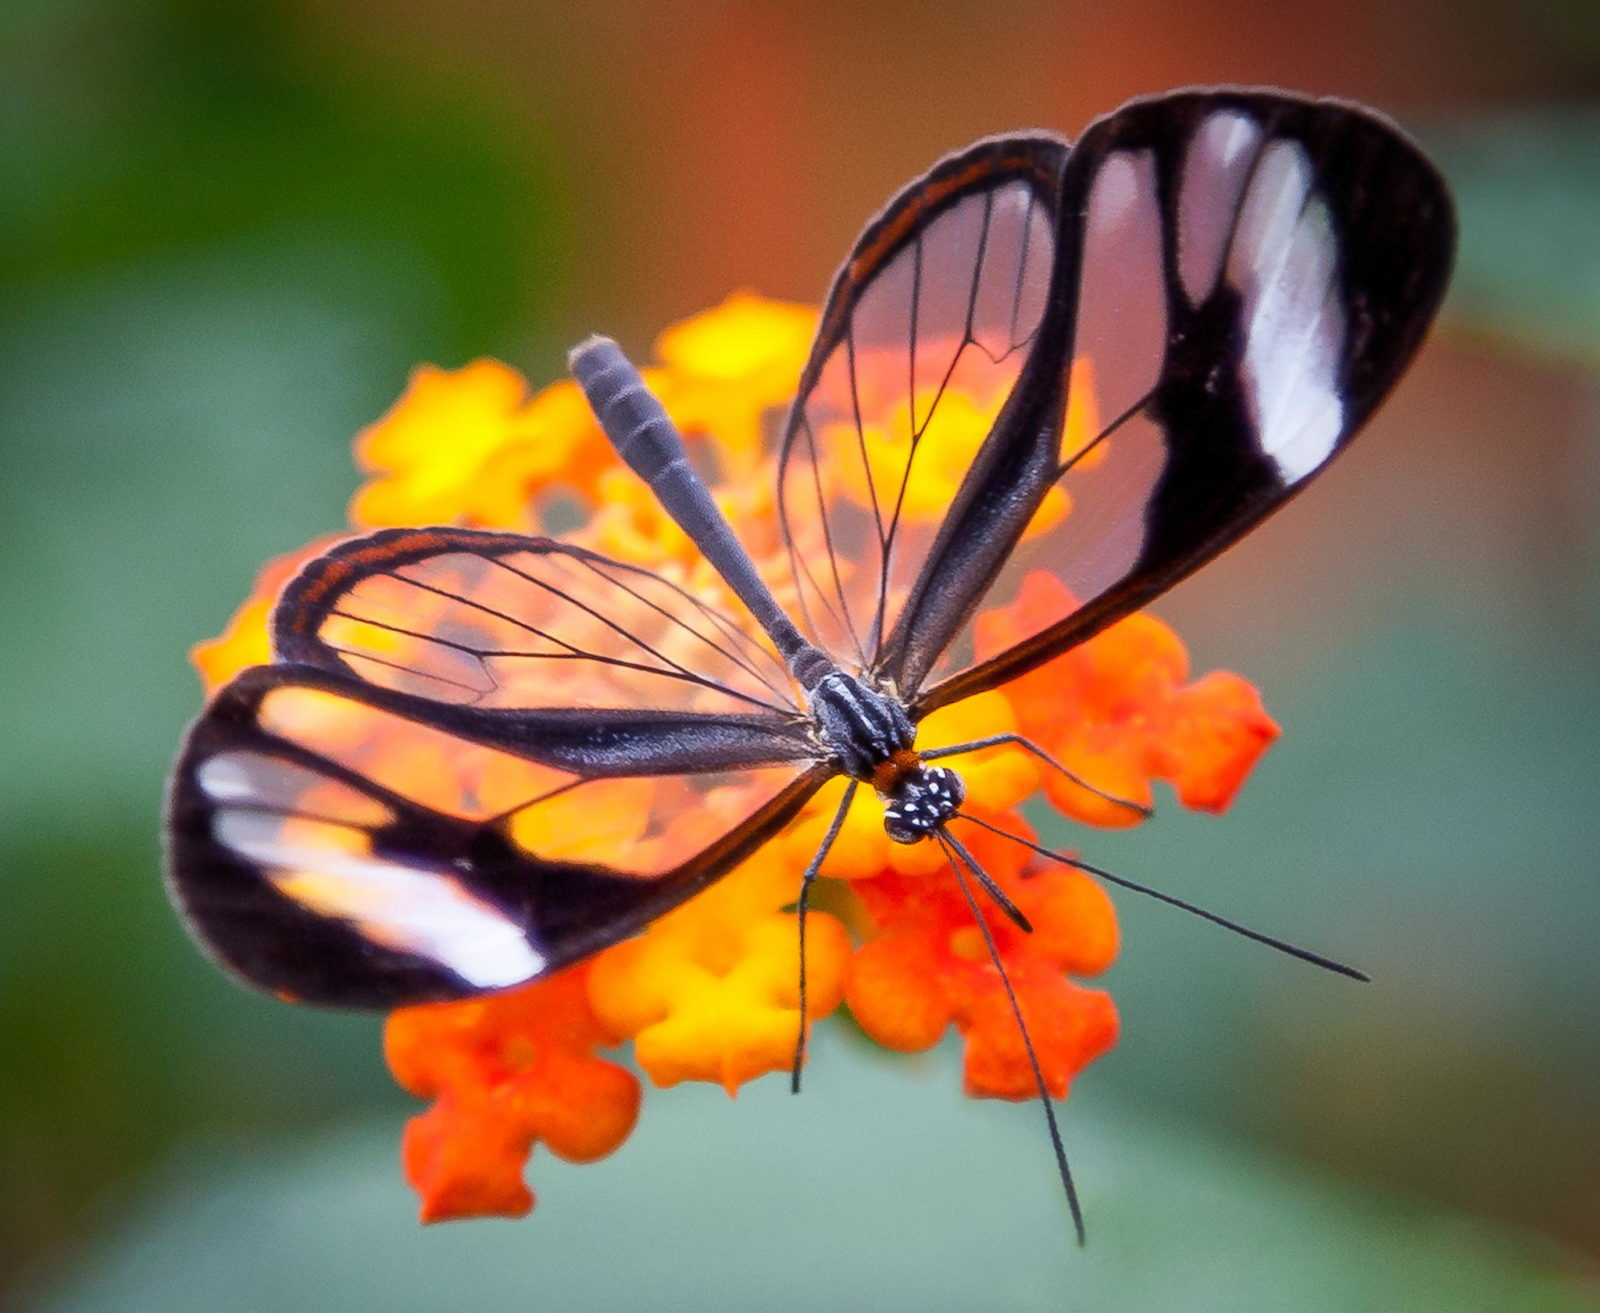 The Butterly Effect - Inner Peace Within